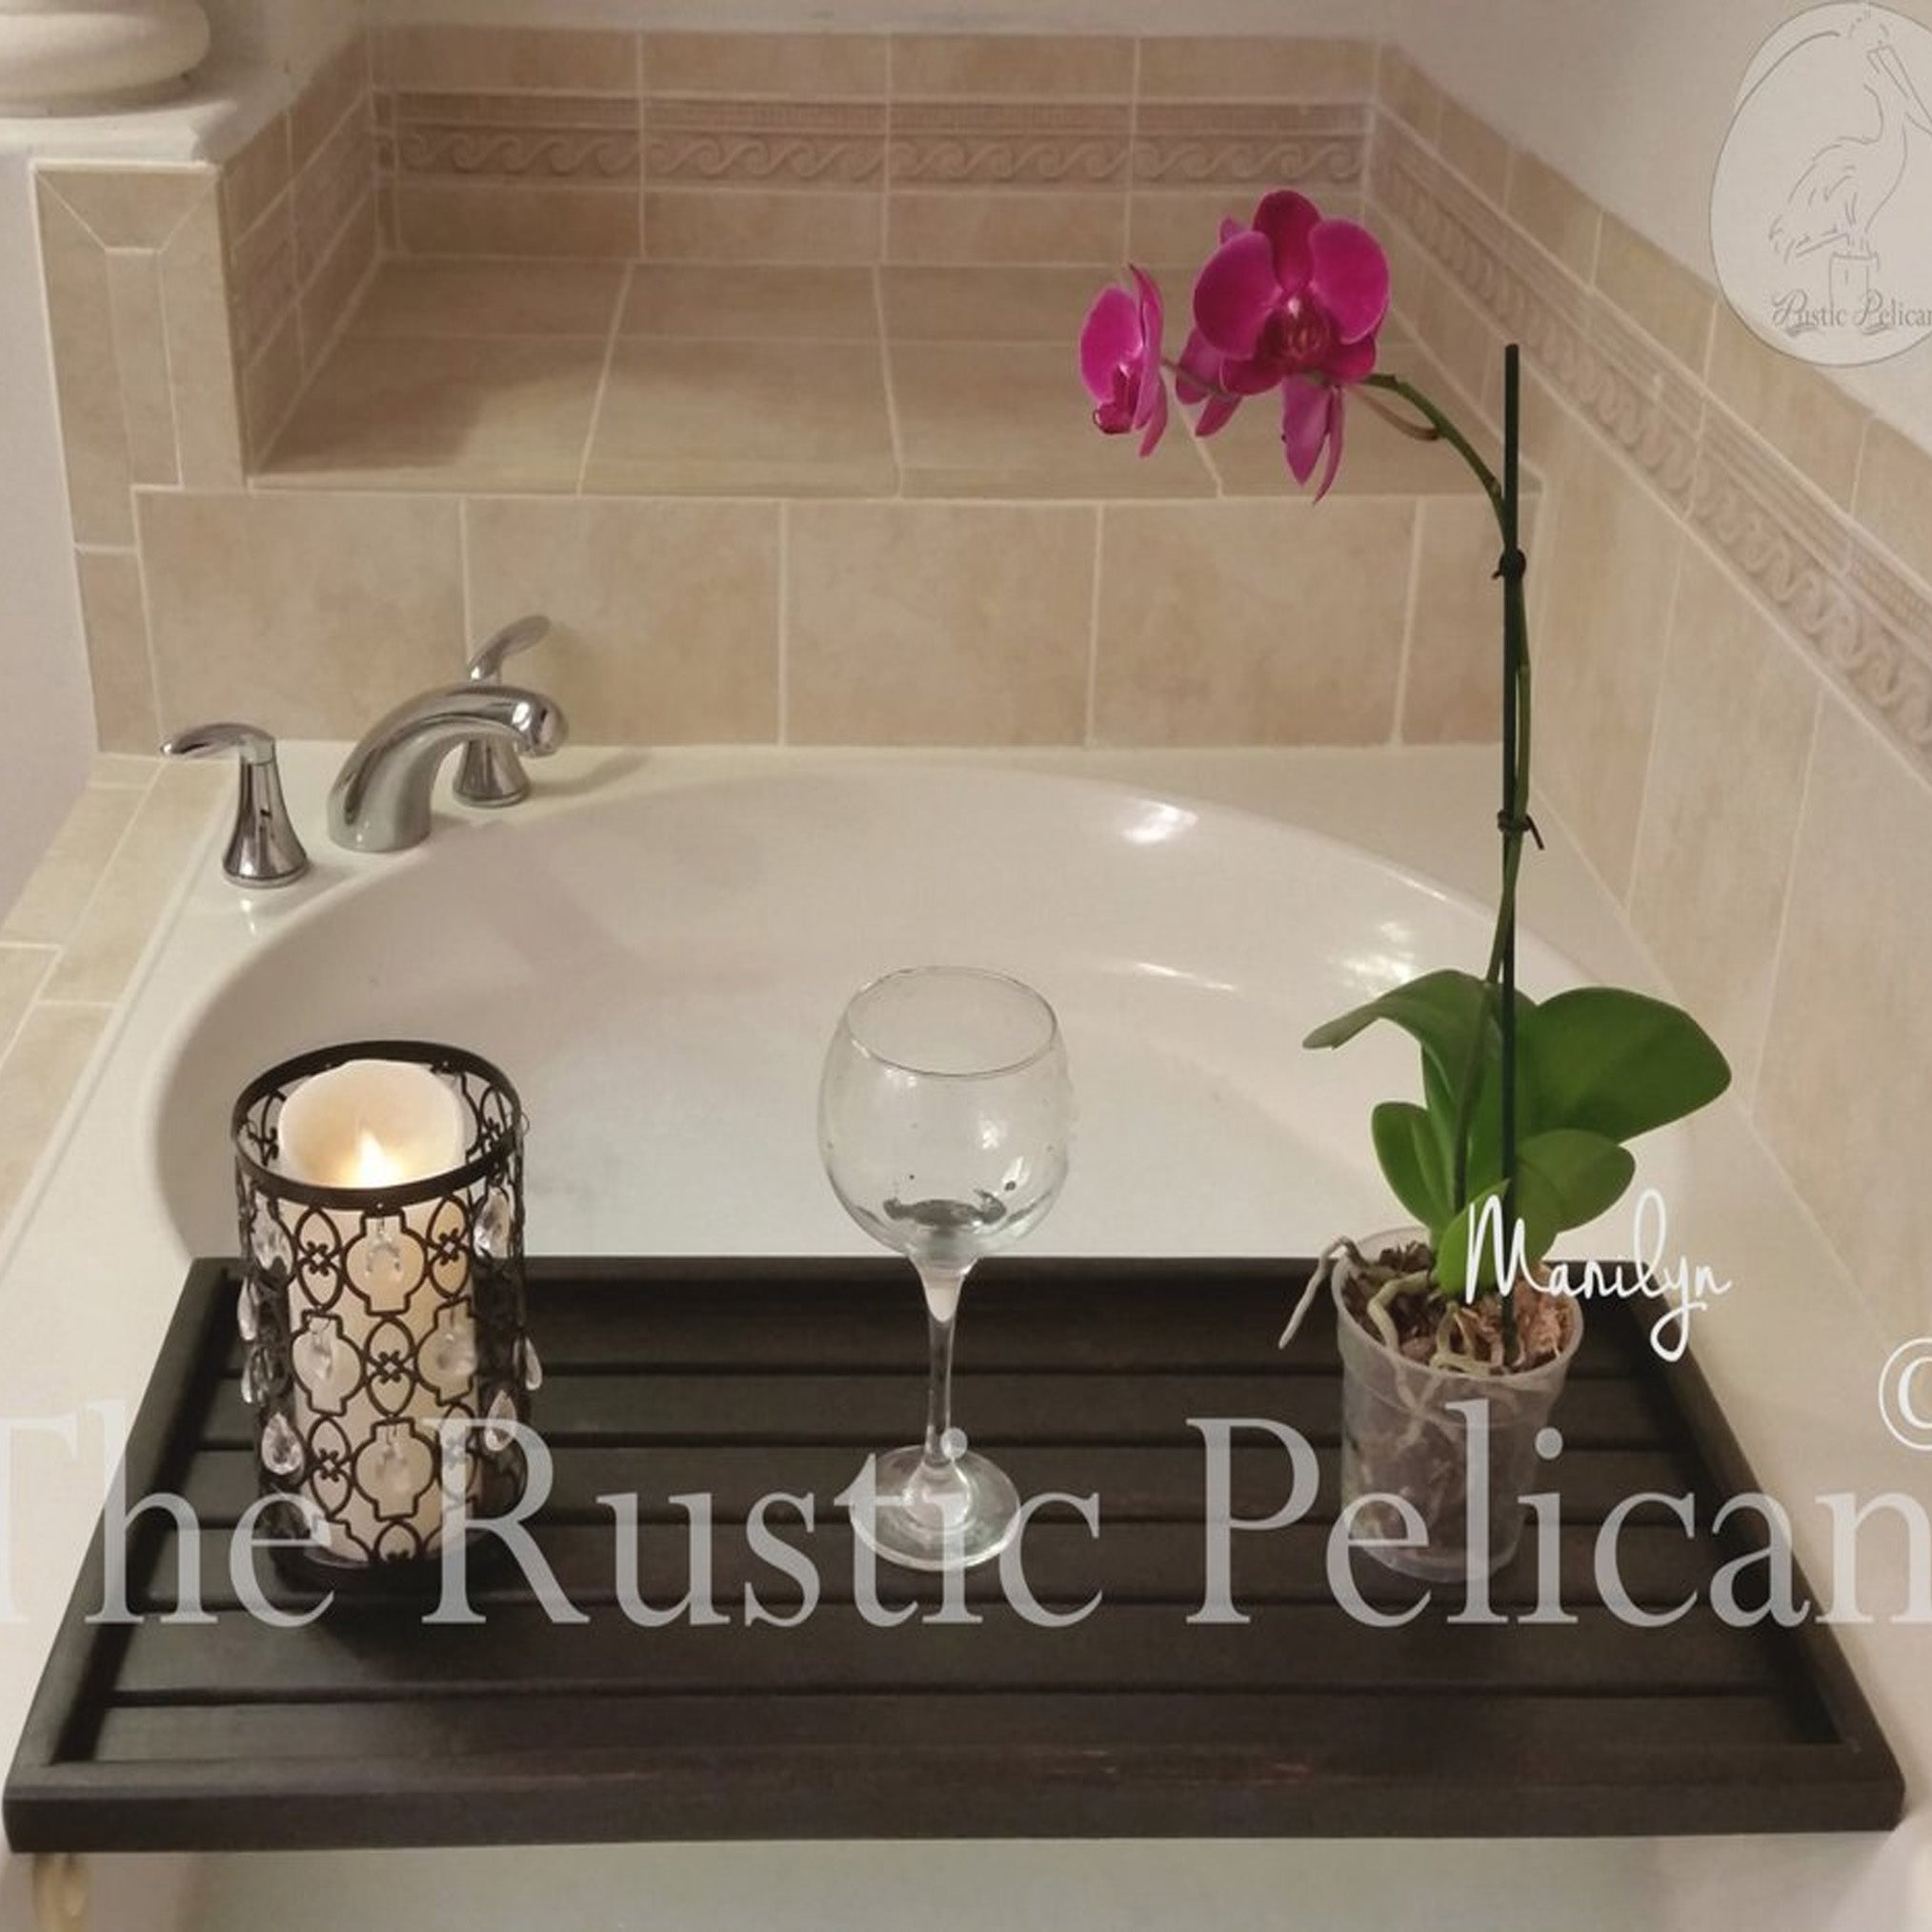 All Tagged Bath Tray The Rustic Pelican